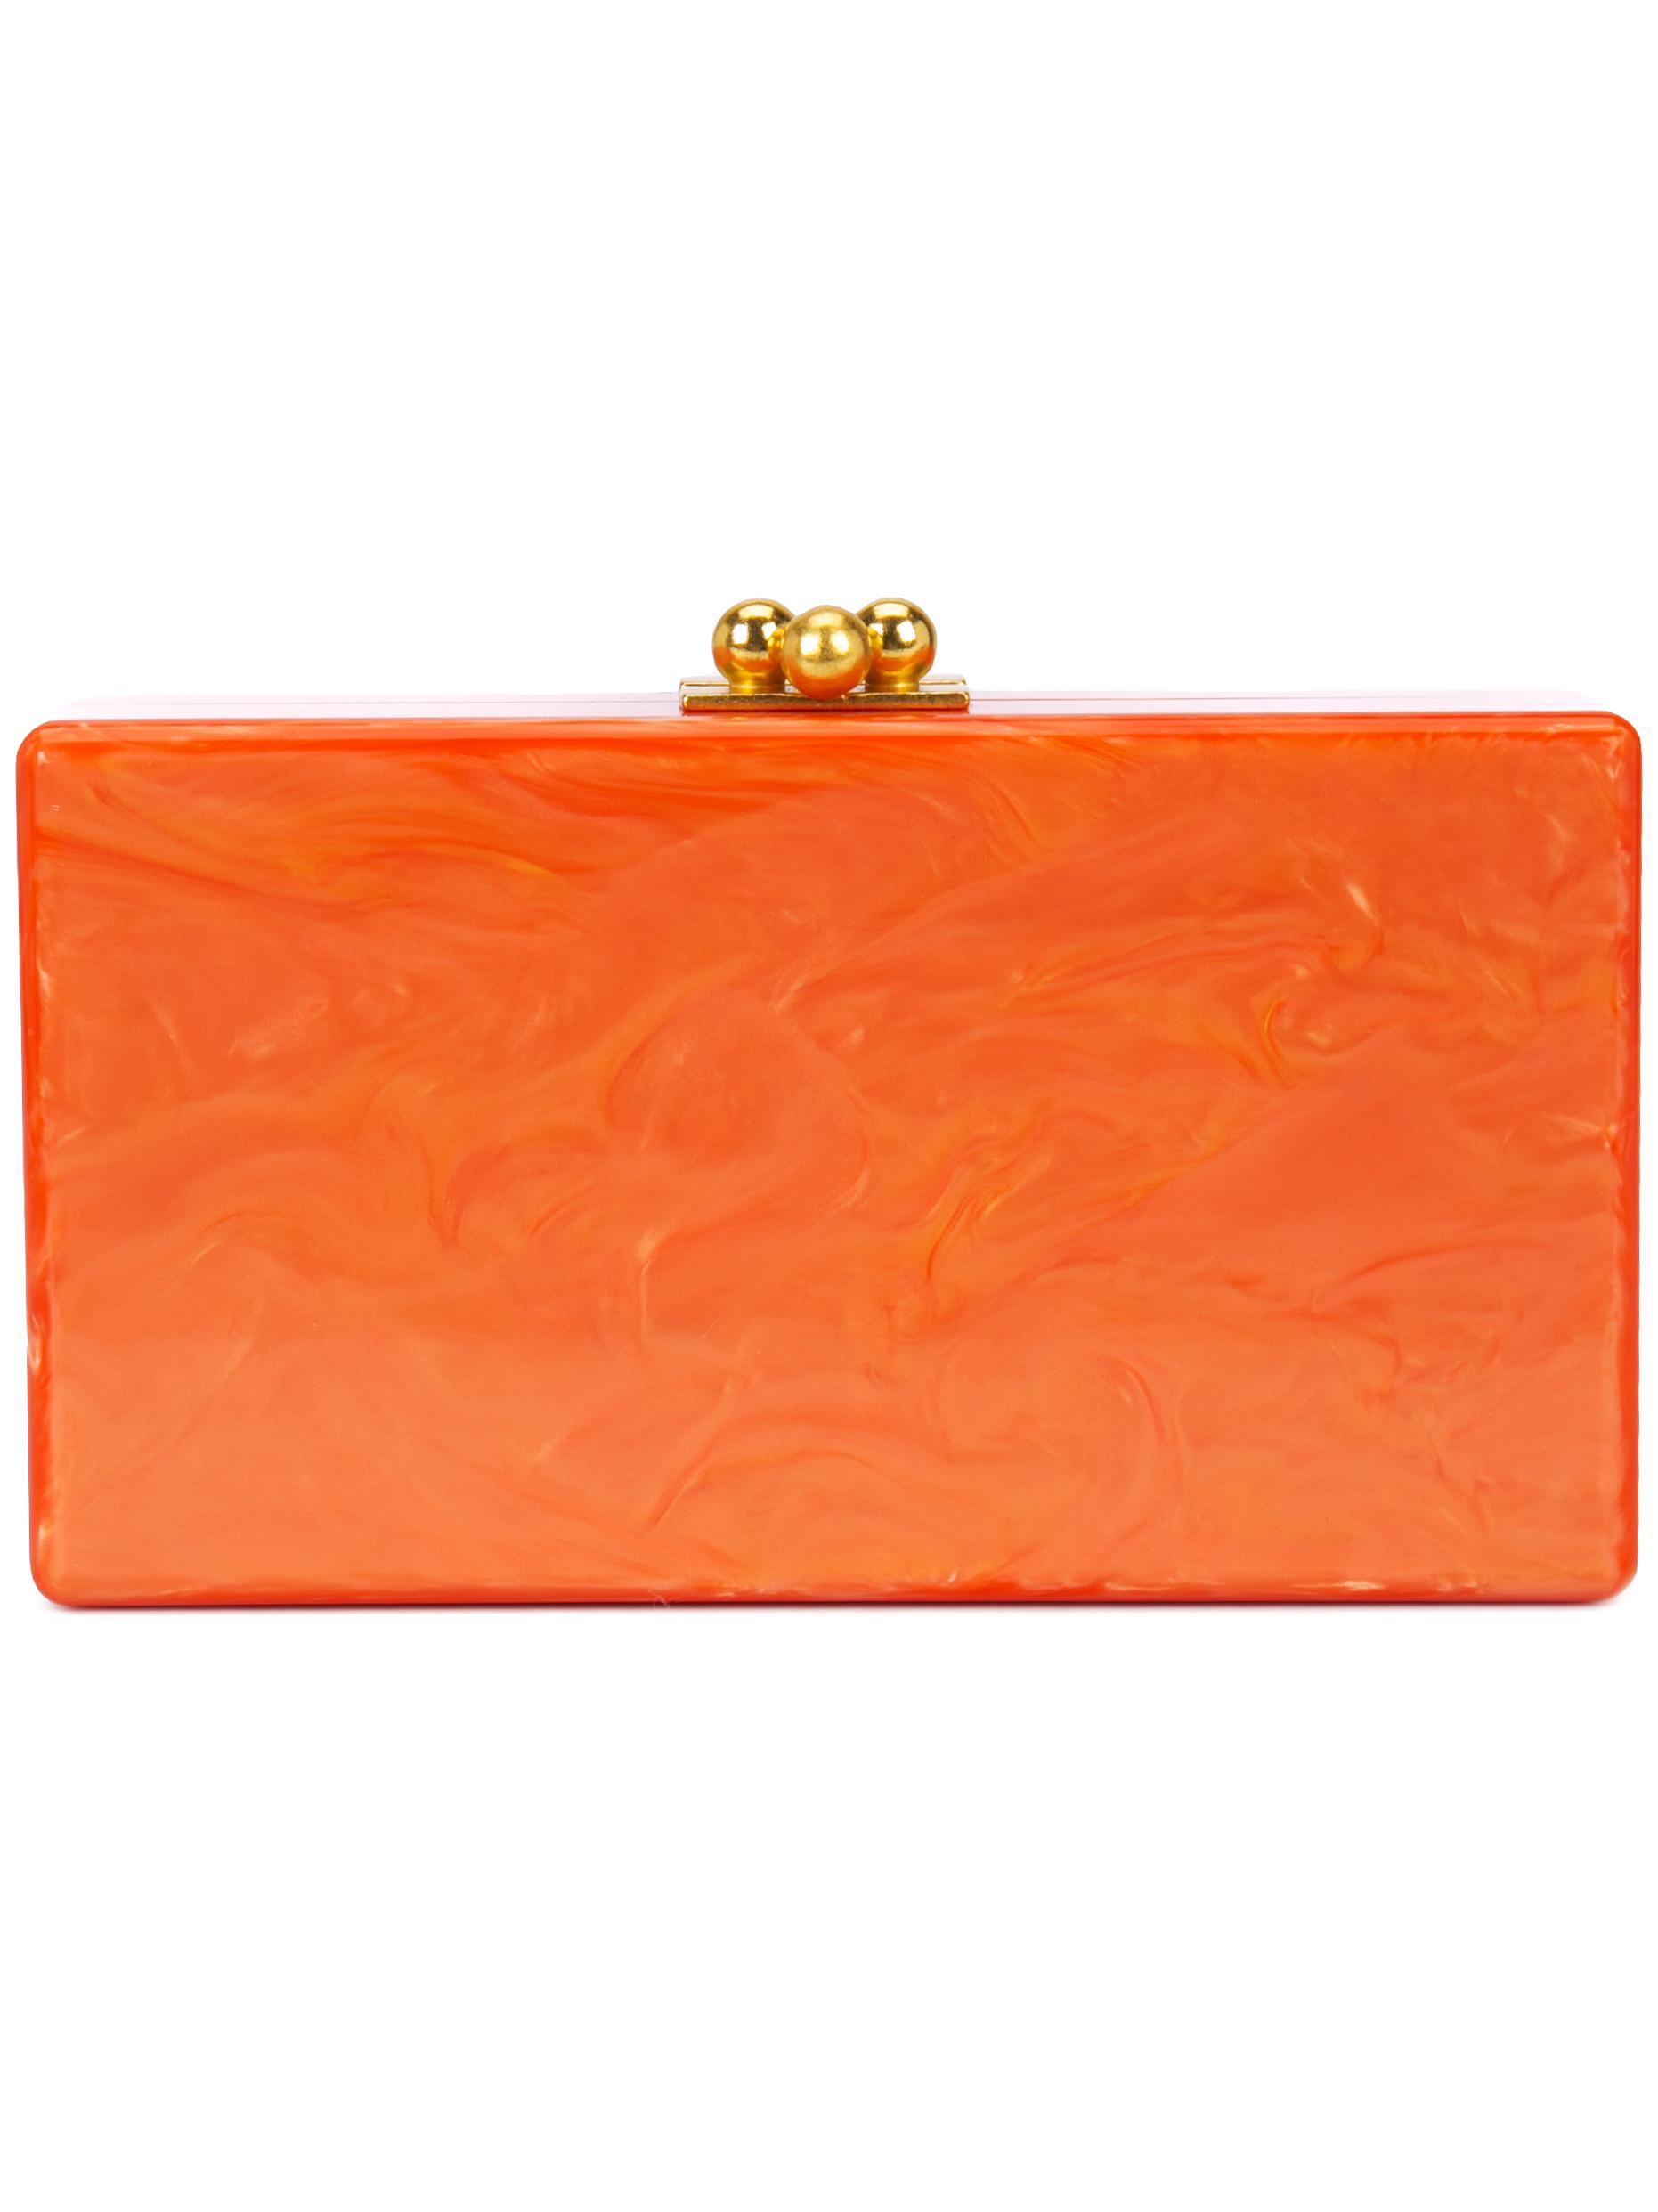 Jean Solid Pearlescent Box Clutch Item # JE0001